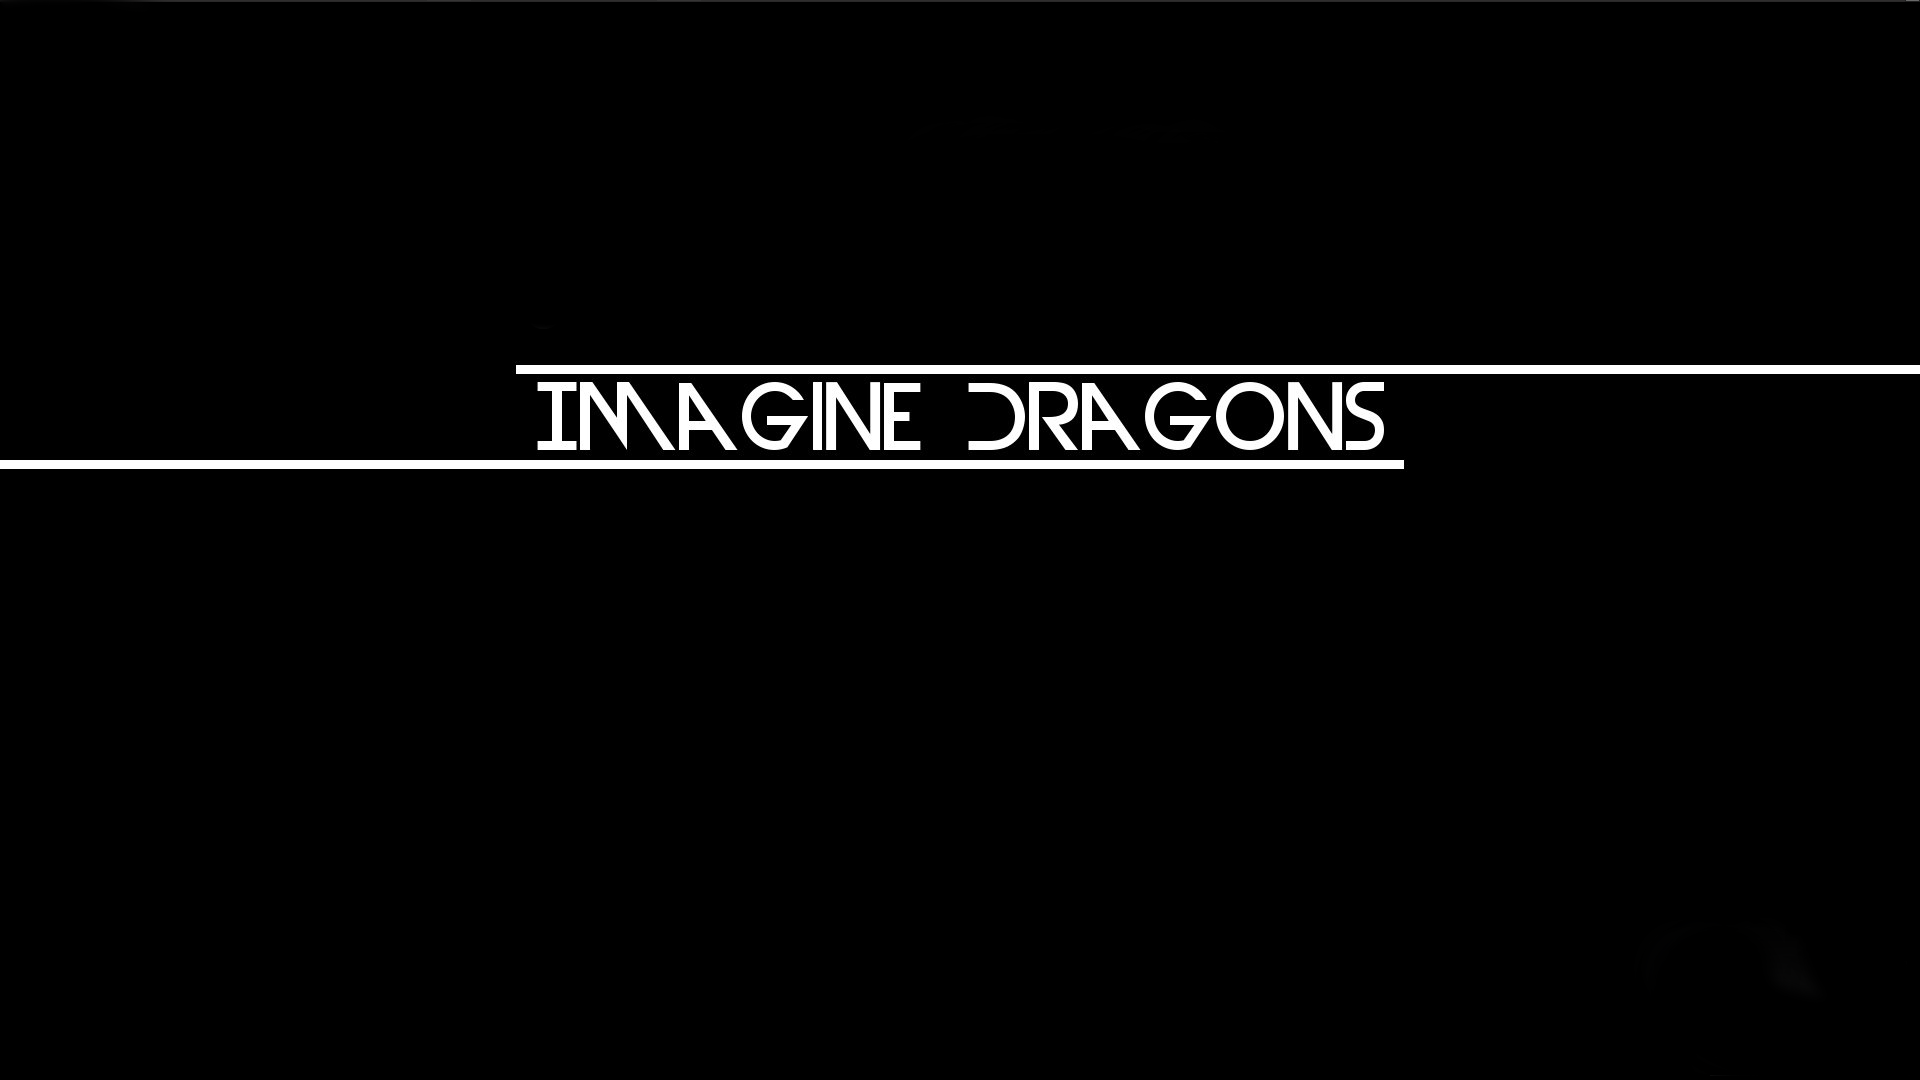 35 Imagine Dragons Hd Wallpapers Backgrounds Wallpaper Abyss Imagine Dragons Background Images Wallpapers Imagine